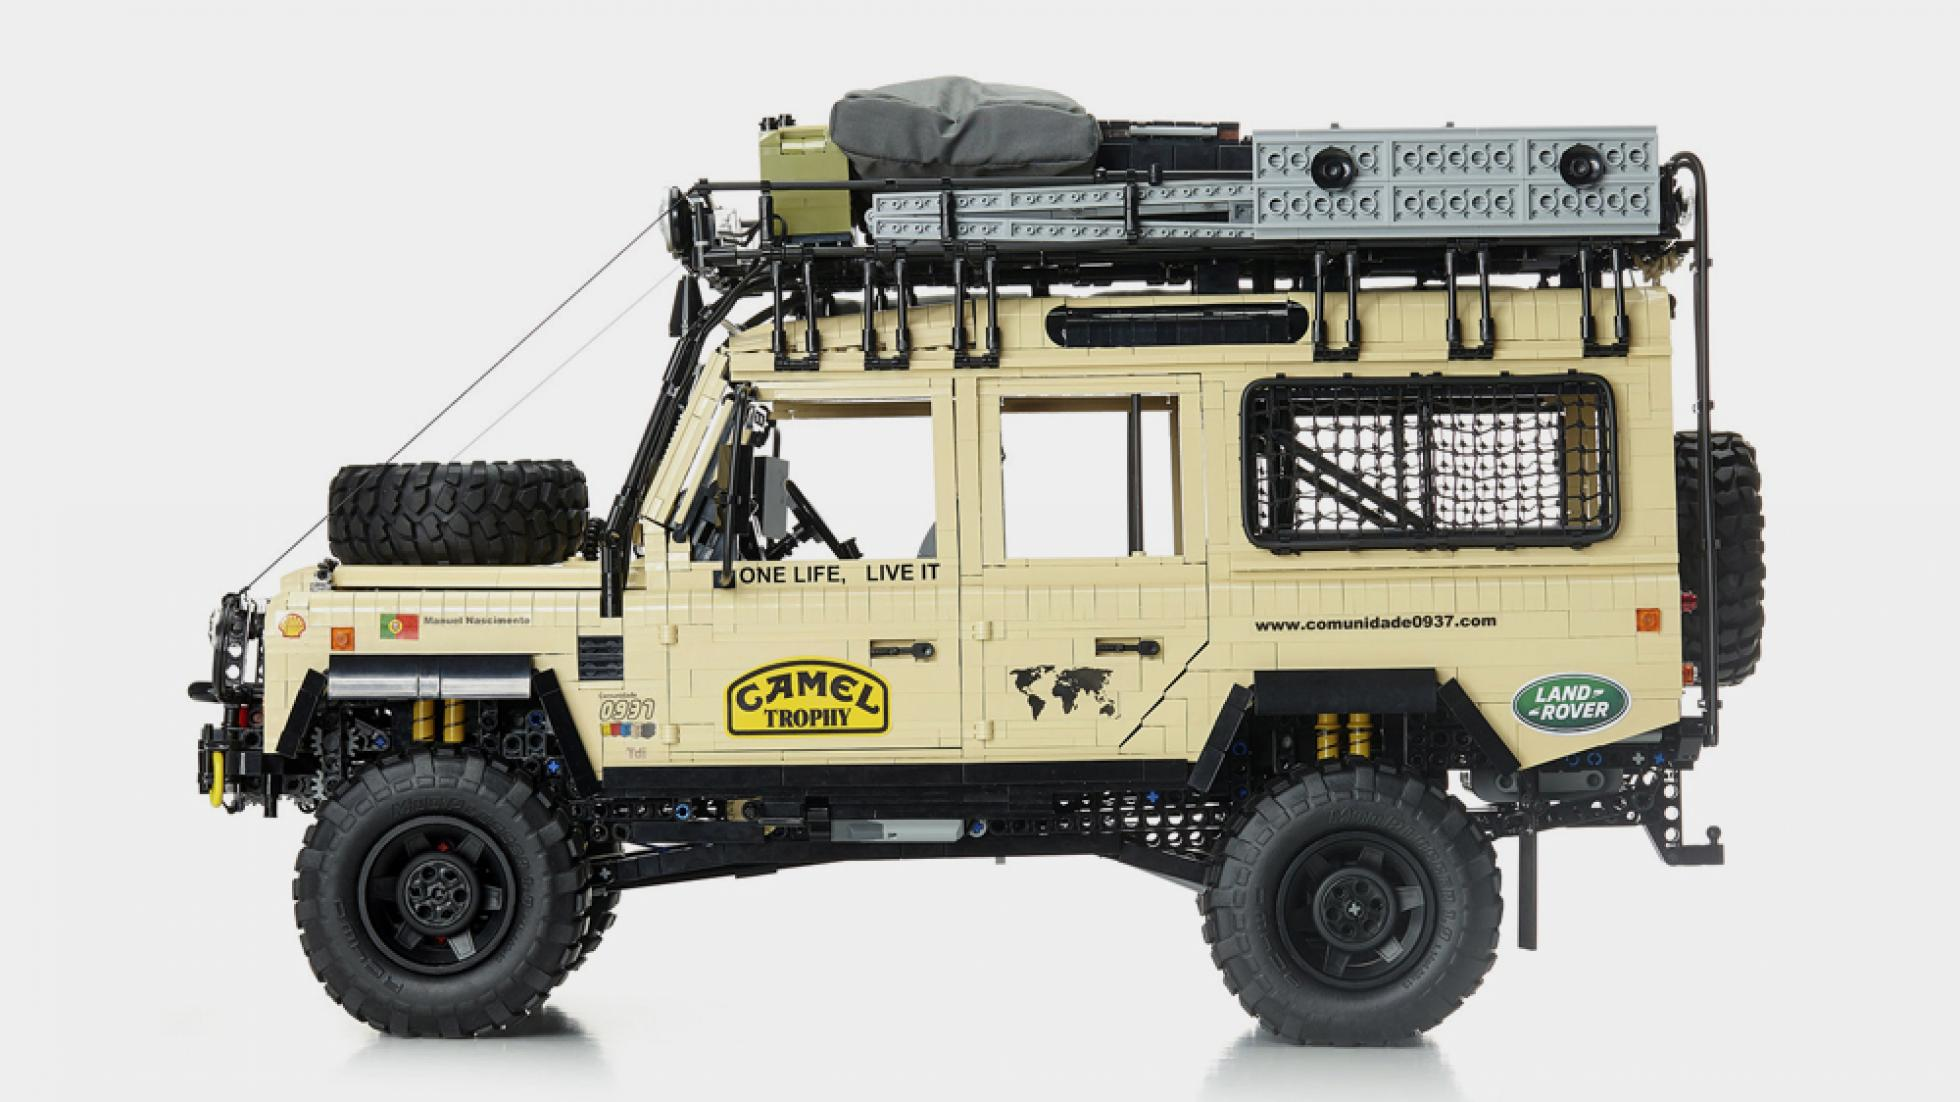 The Camel Trophy Land Rover Profile